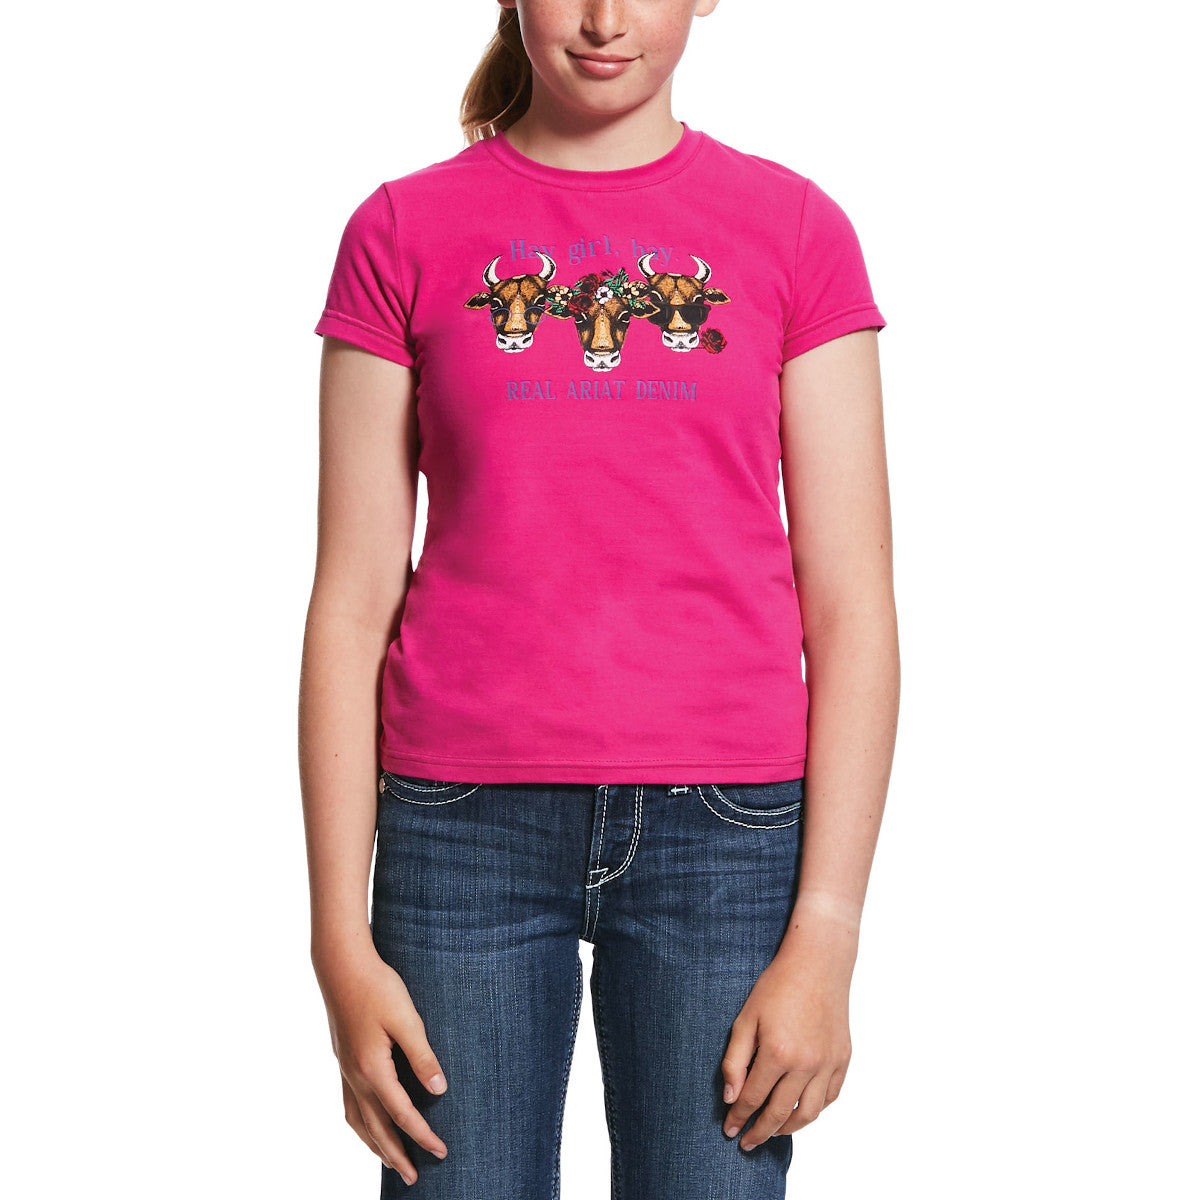 Ariat Kids' Pink R.E.A.L. Hay Girl Short Sleeve T-Shirt